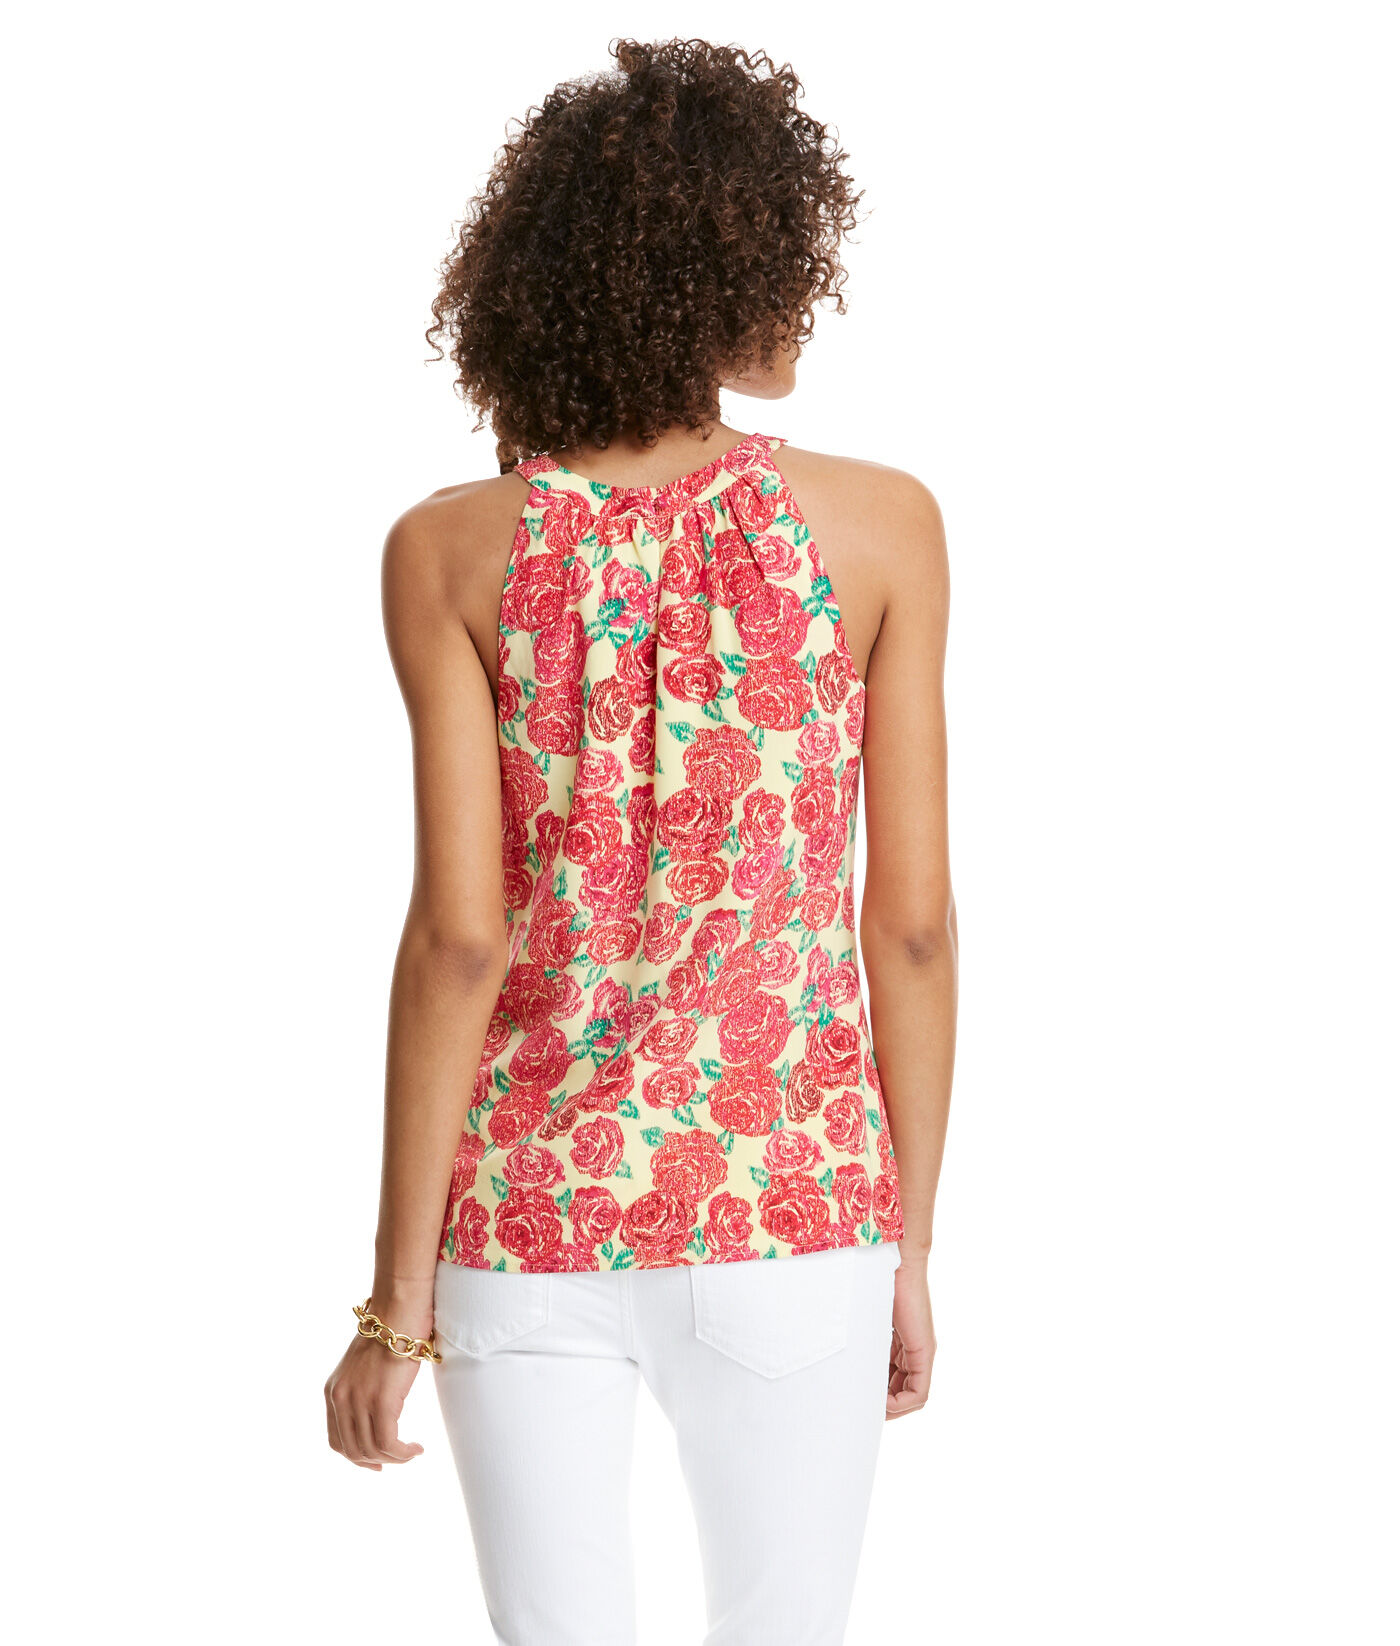 Run For The Roses Print Top